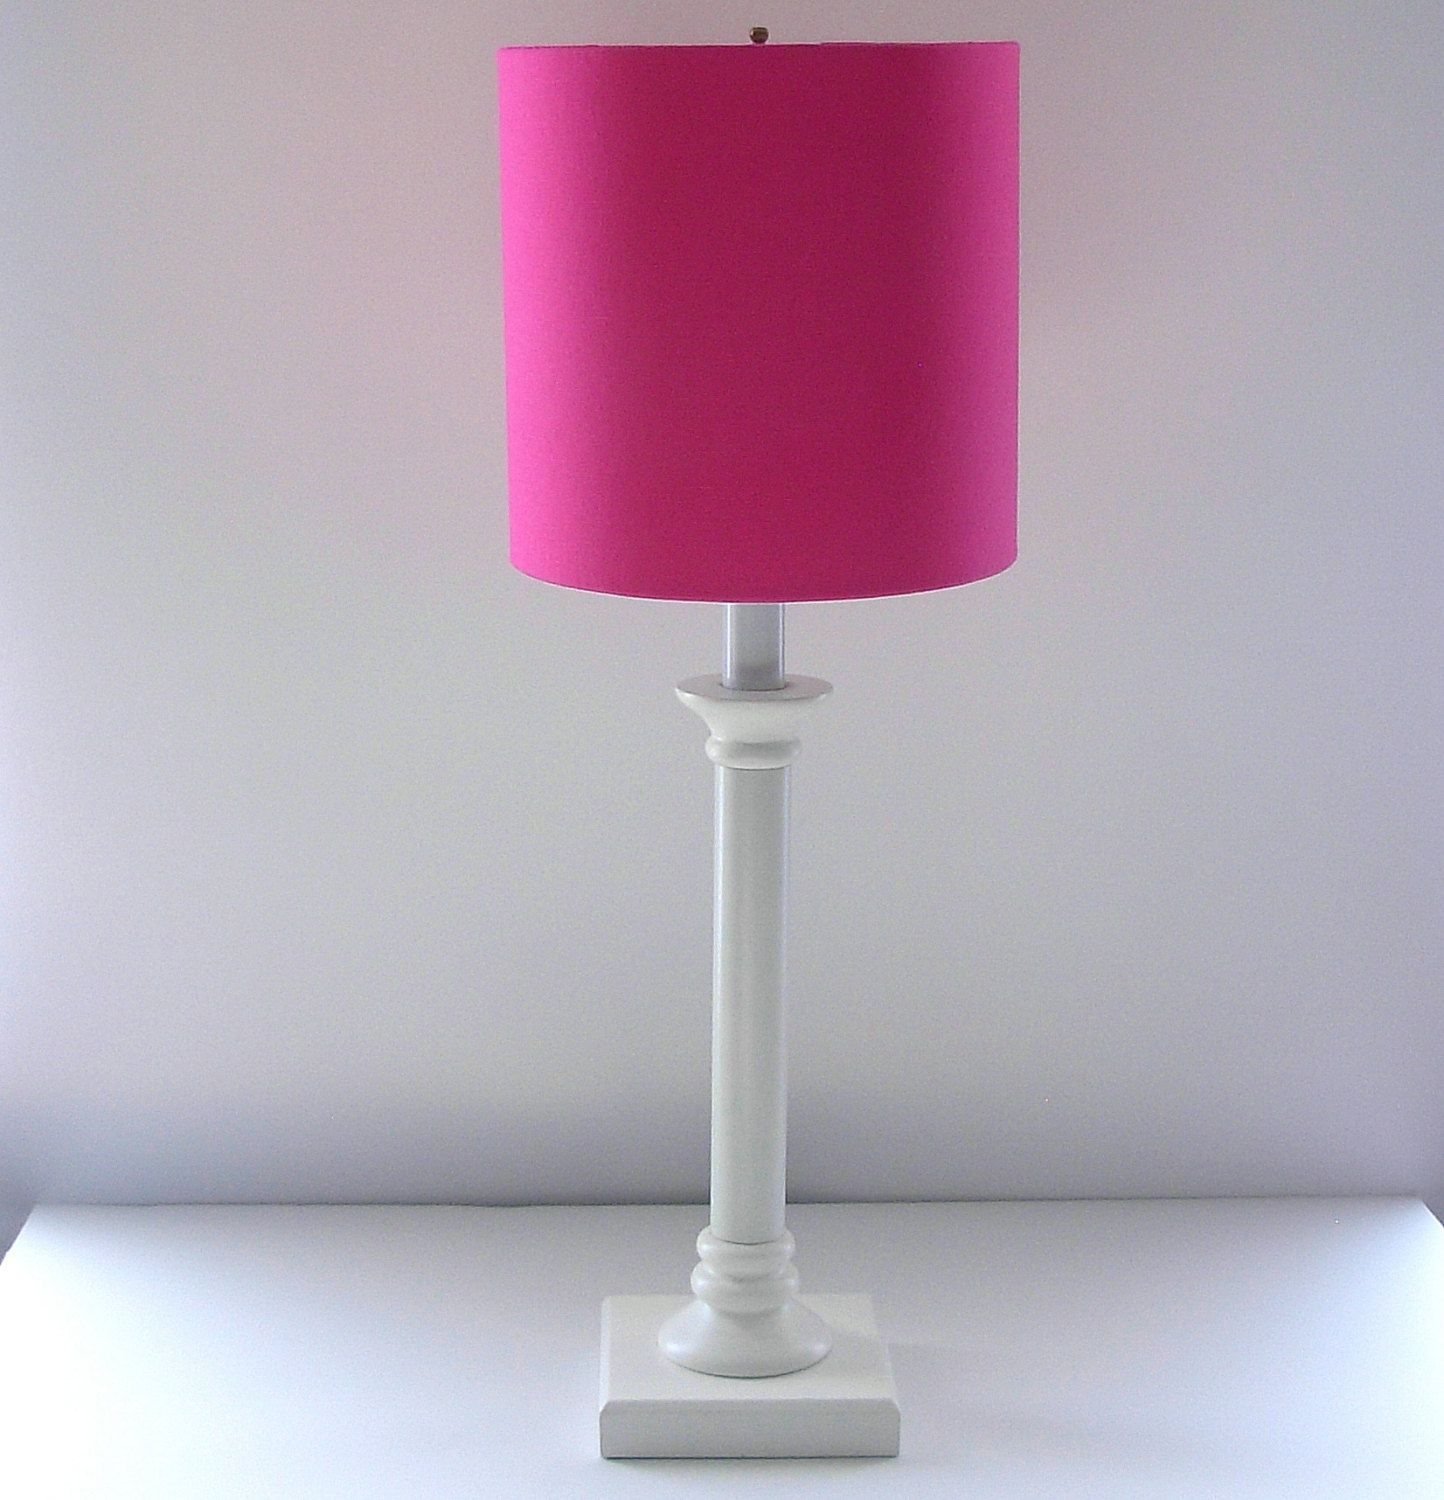 Lamp shade pinkdrum lampshadeallother colors available items similar to pink lamp shade drum lampshade table lamp pink drumshade light bedroom on etsy geotapseo Image collections